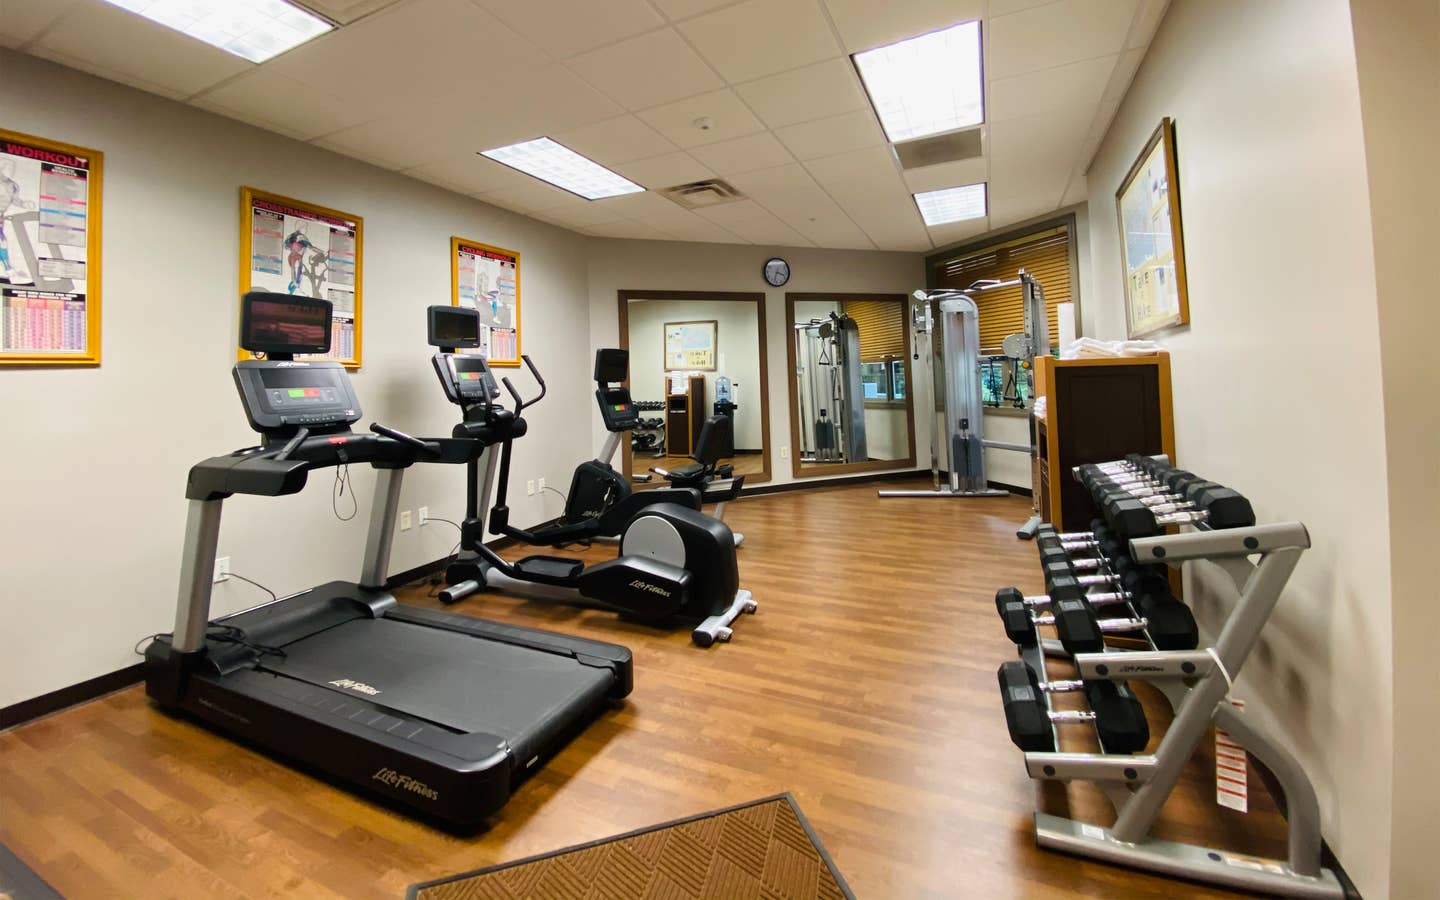 Fitness center with a treadmill, stationary bicycle, elliptical and free weights at Smoky Mountain Resort in Gatlinburg, Tennessee.